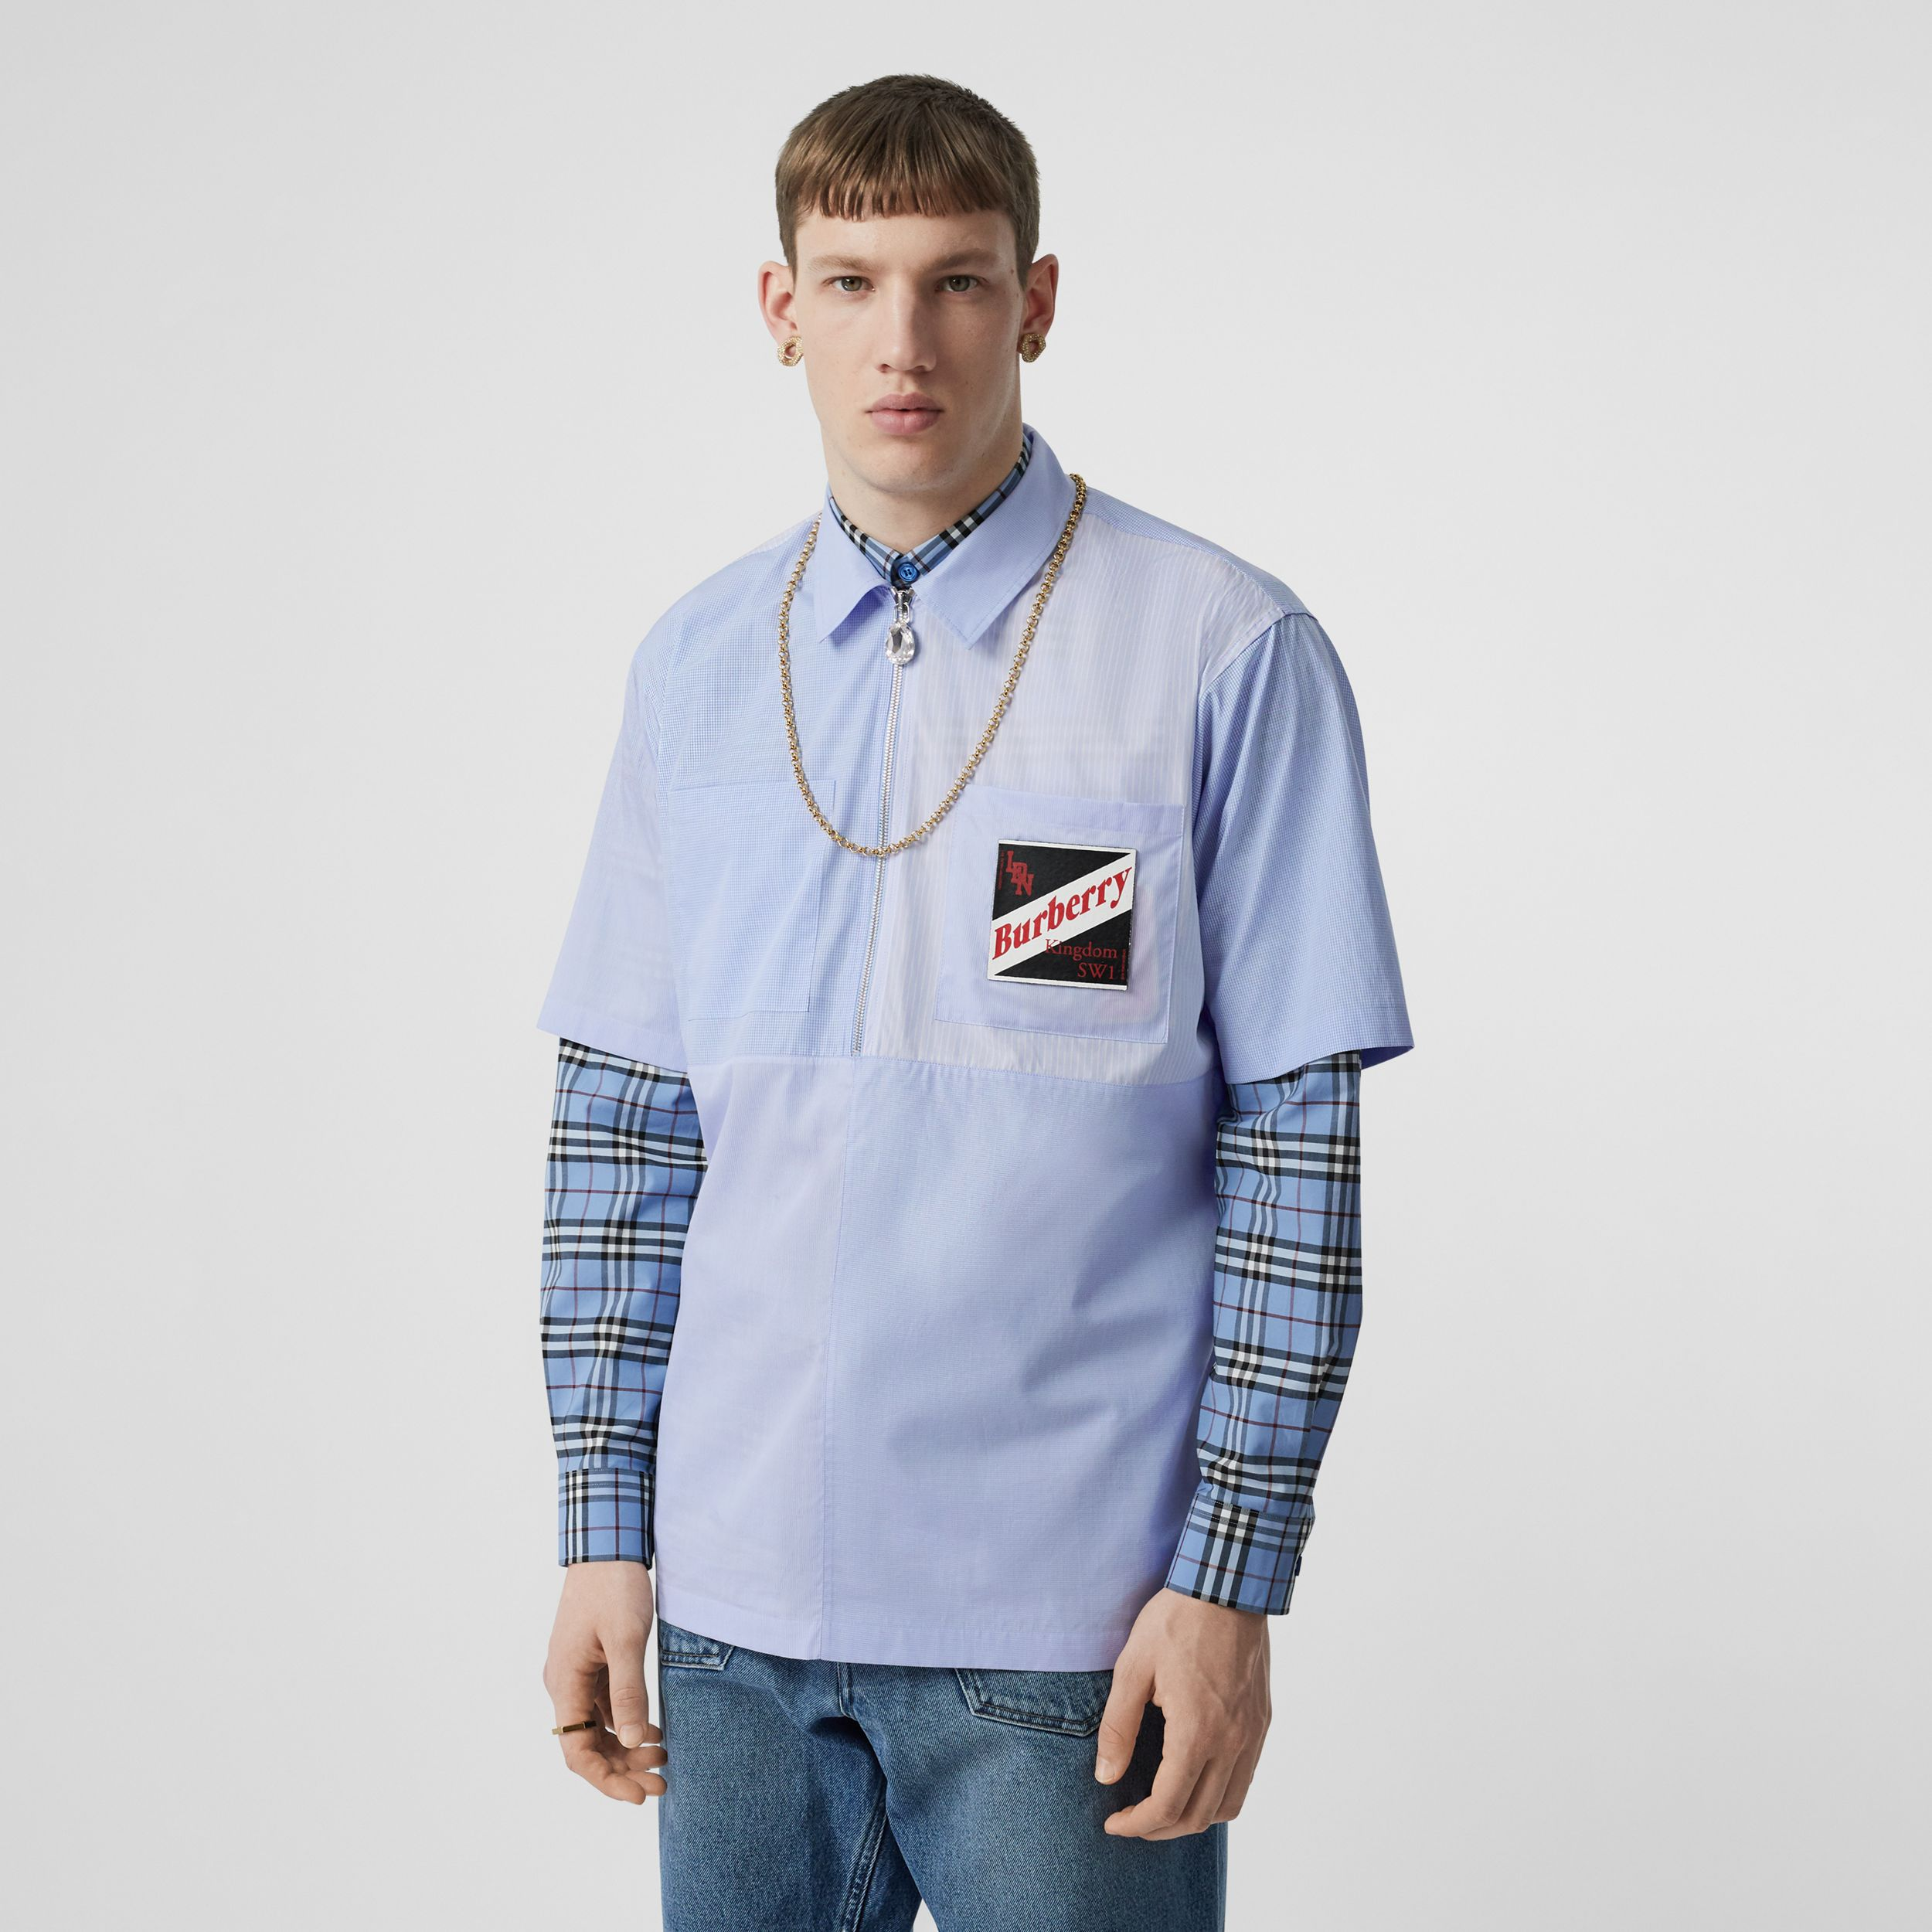 Short-sleeve Logo Graphic Patchwork Cotton Shirt in Pale Blue - Men | Burberry United Kingdom - 1